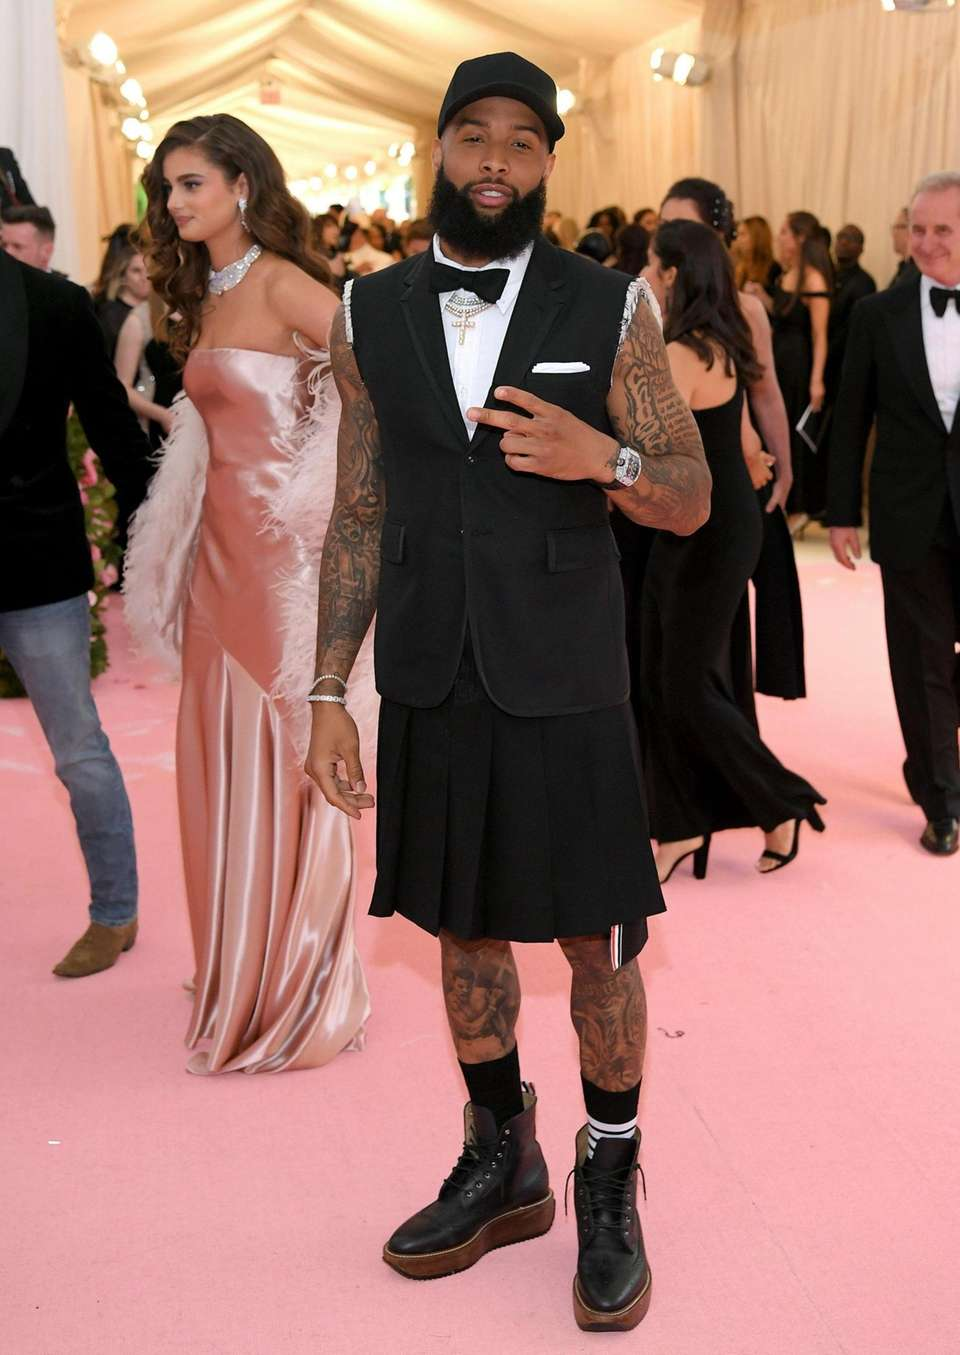 Odell Beckham Jr. attends The 2019 Met Gala